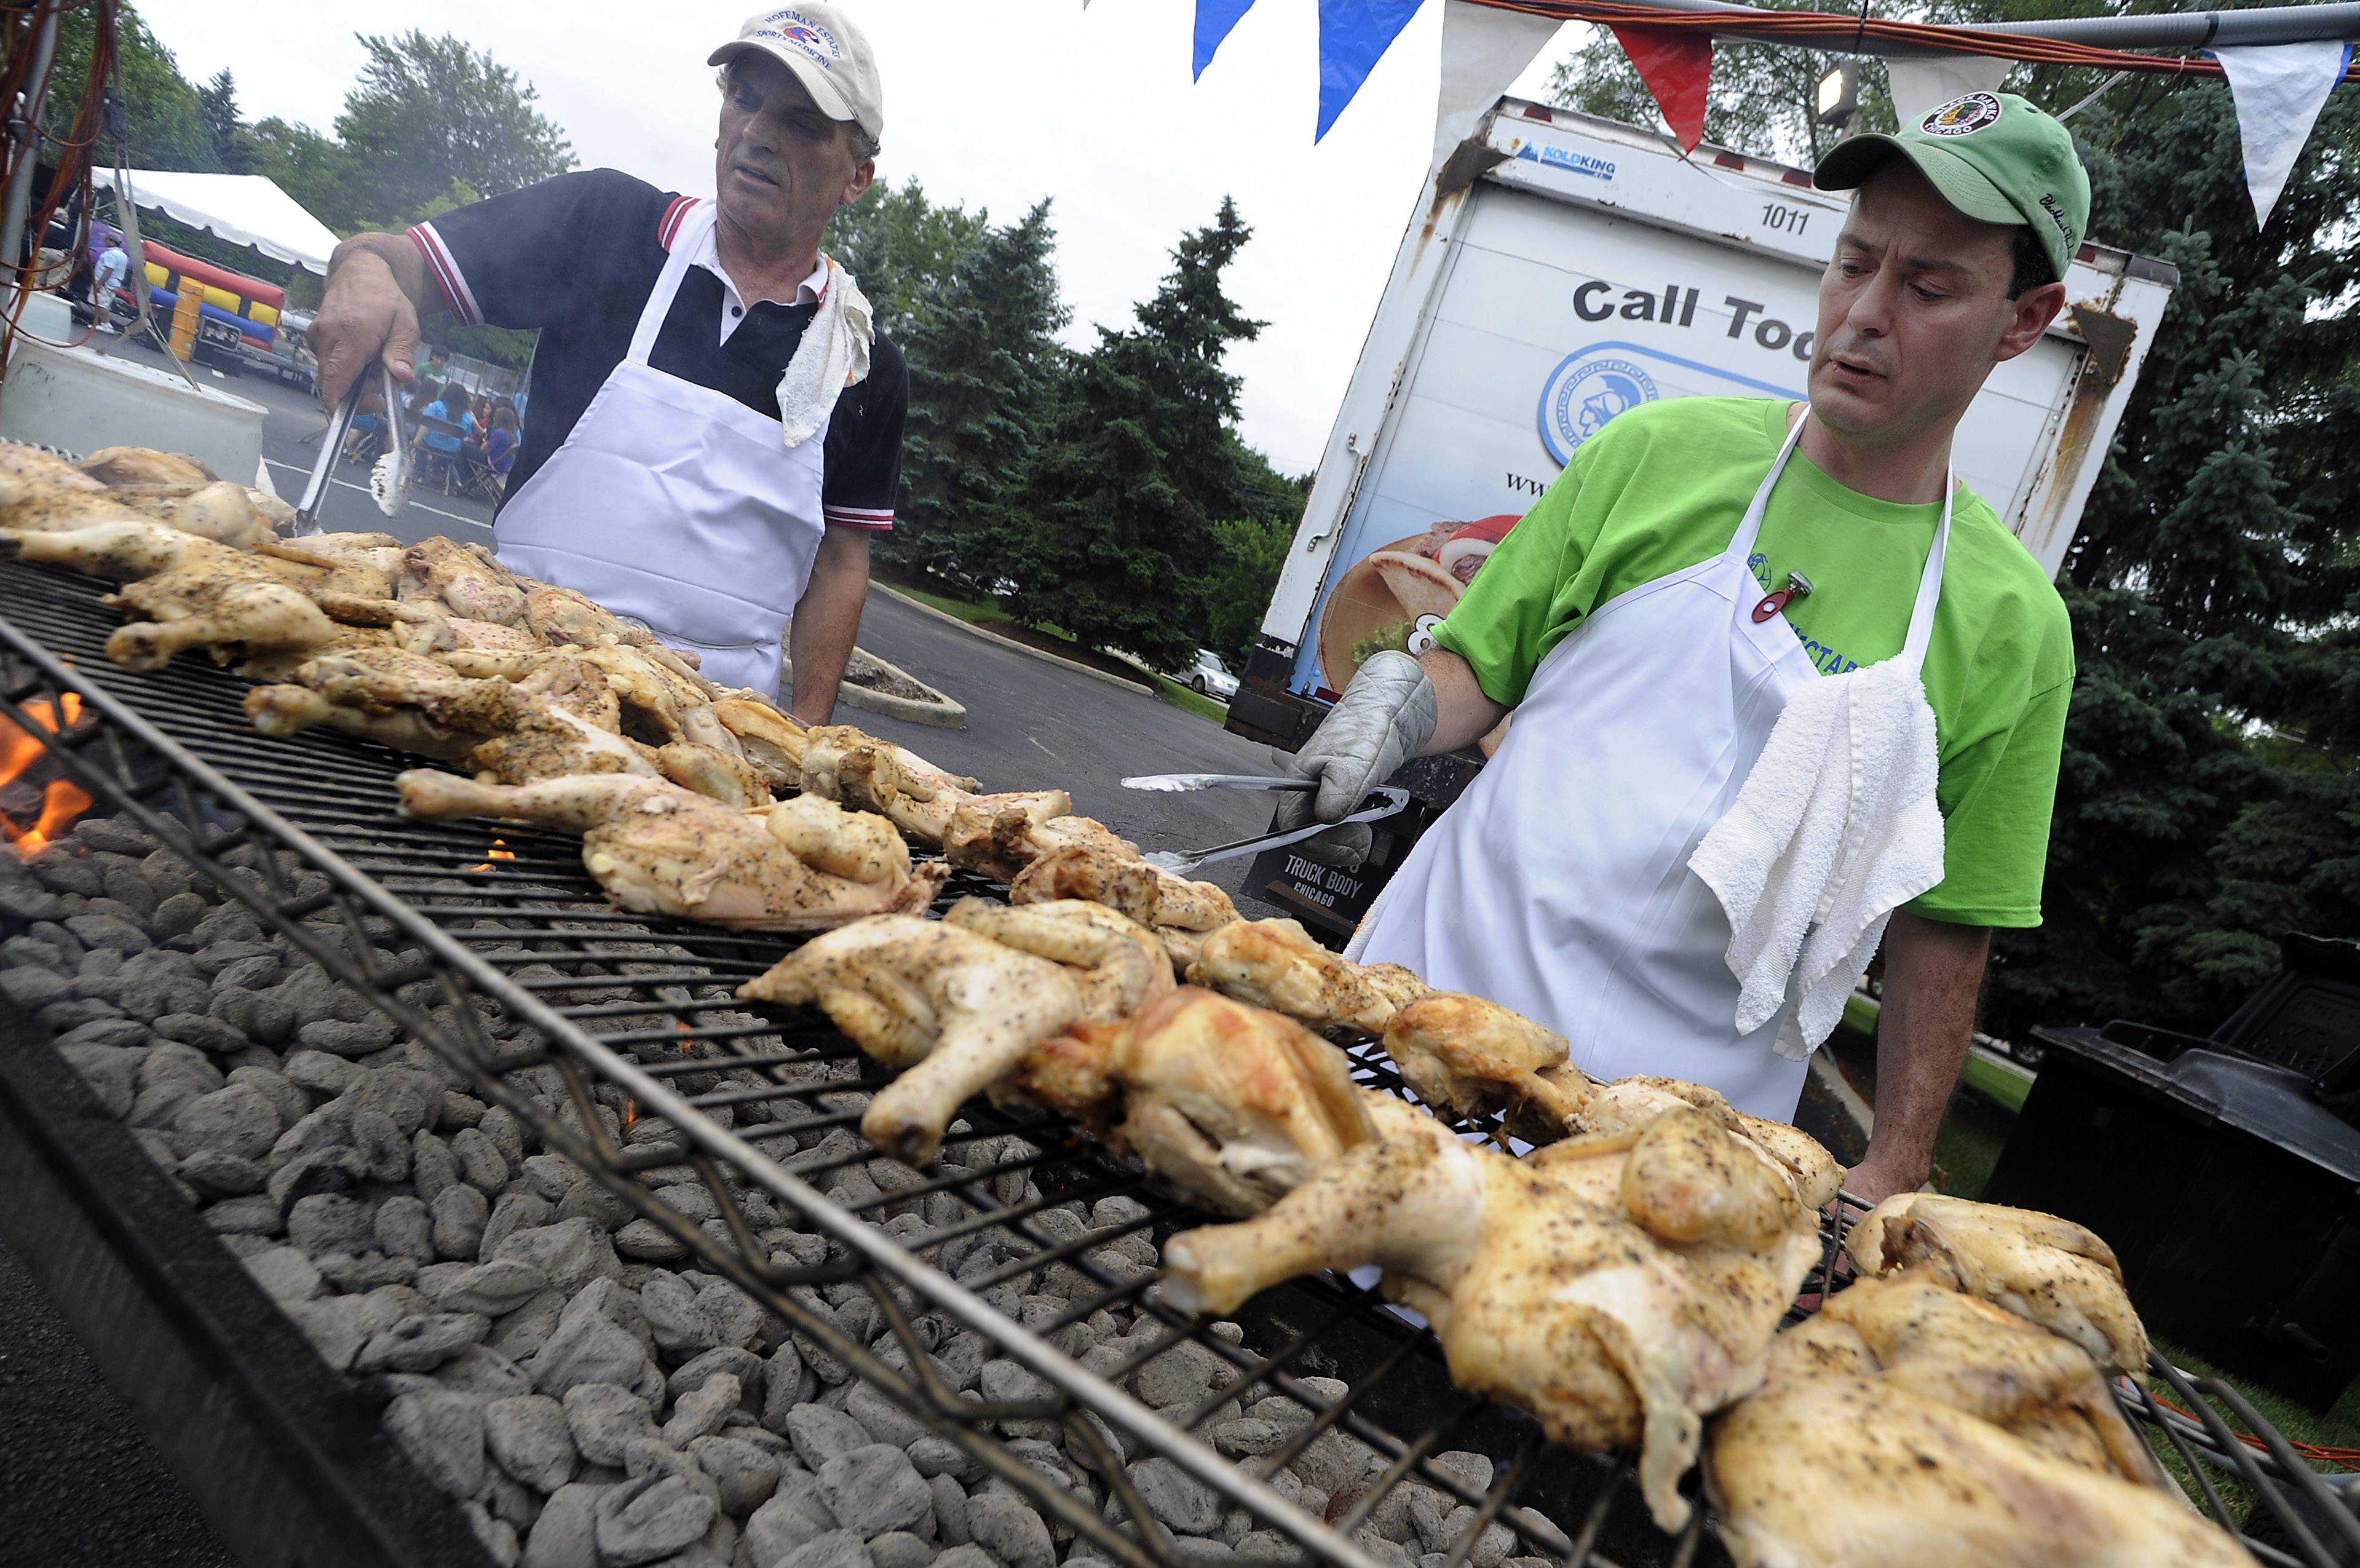 Peter Phillips of Schaumburg (right) along with John Giannopoulos of Hanover Park cook up St. Nectarios of Palatine's famous chicken during a recent Greek Fest celebration. The annual festival returns to the Palatine church this weekend, featuring the best in Greek food, culture and music.